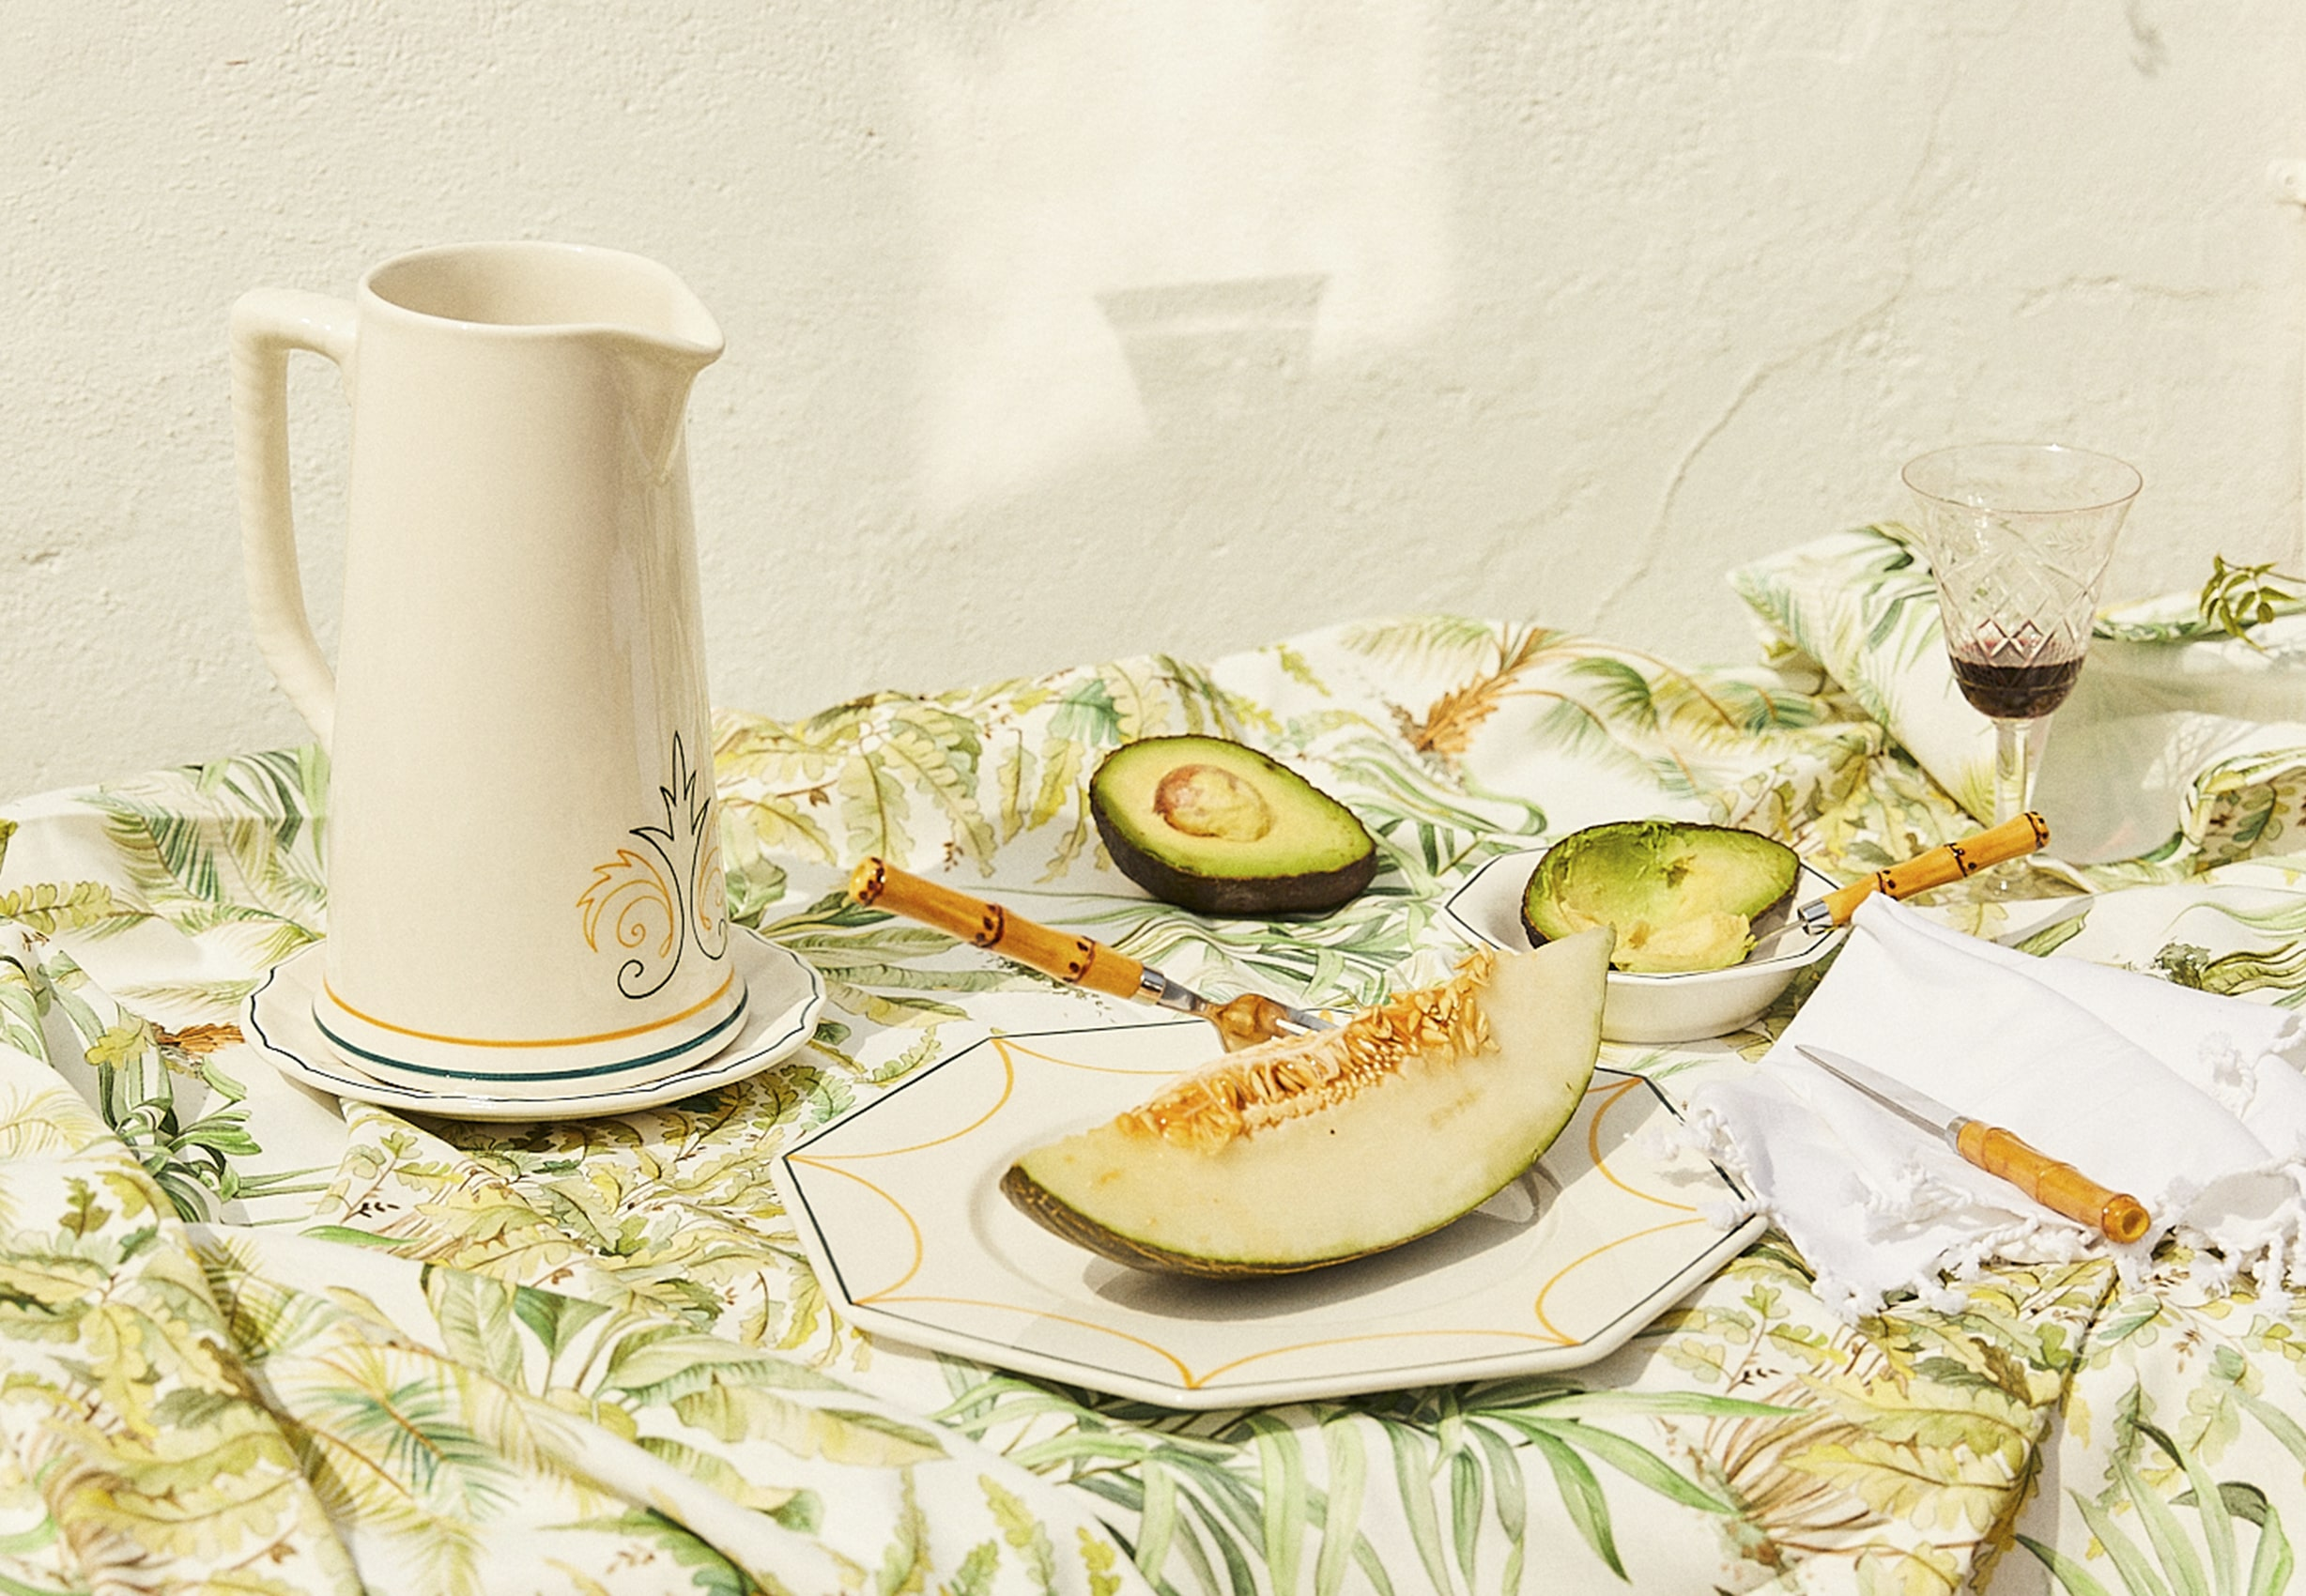 TABLEWARE: SURROUNDED BY CACTUSES AND PALM TREES